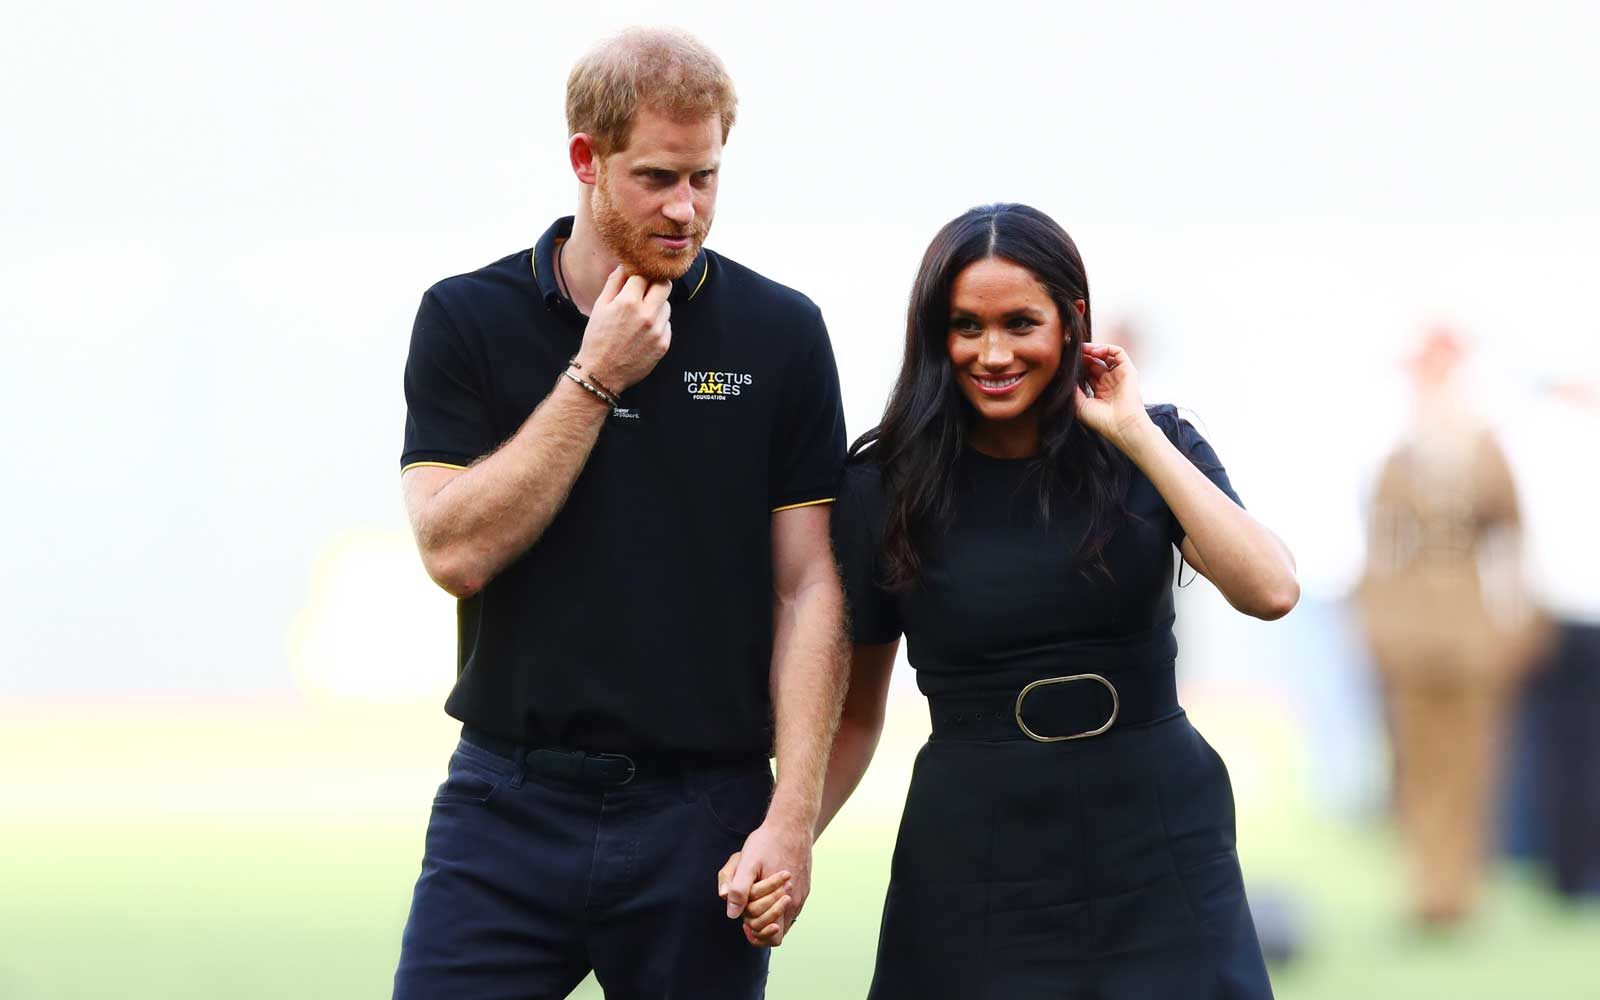 Prince Harry and Meghan Markle Now Have Their Own Charity